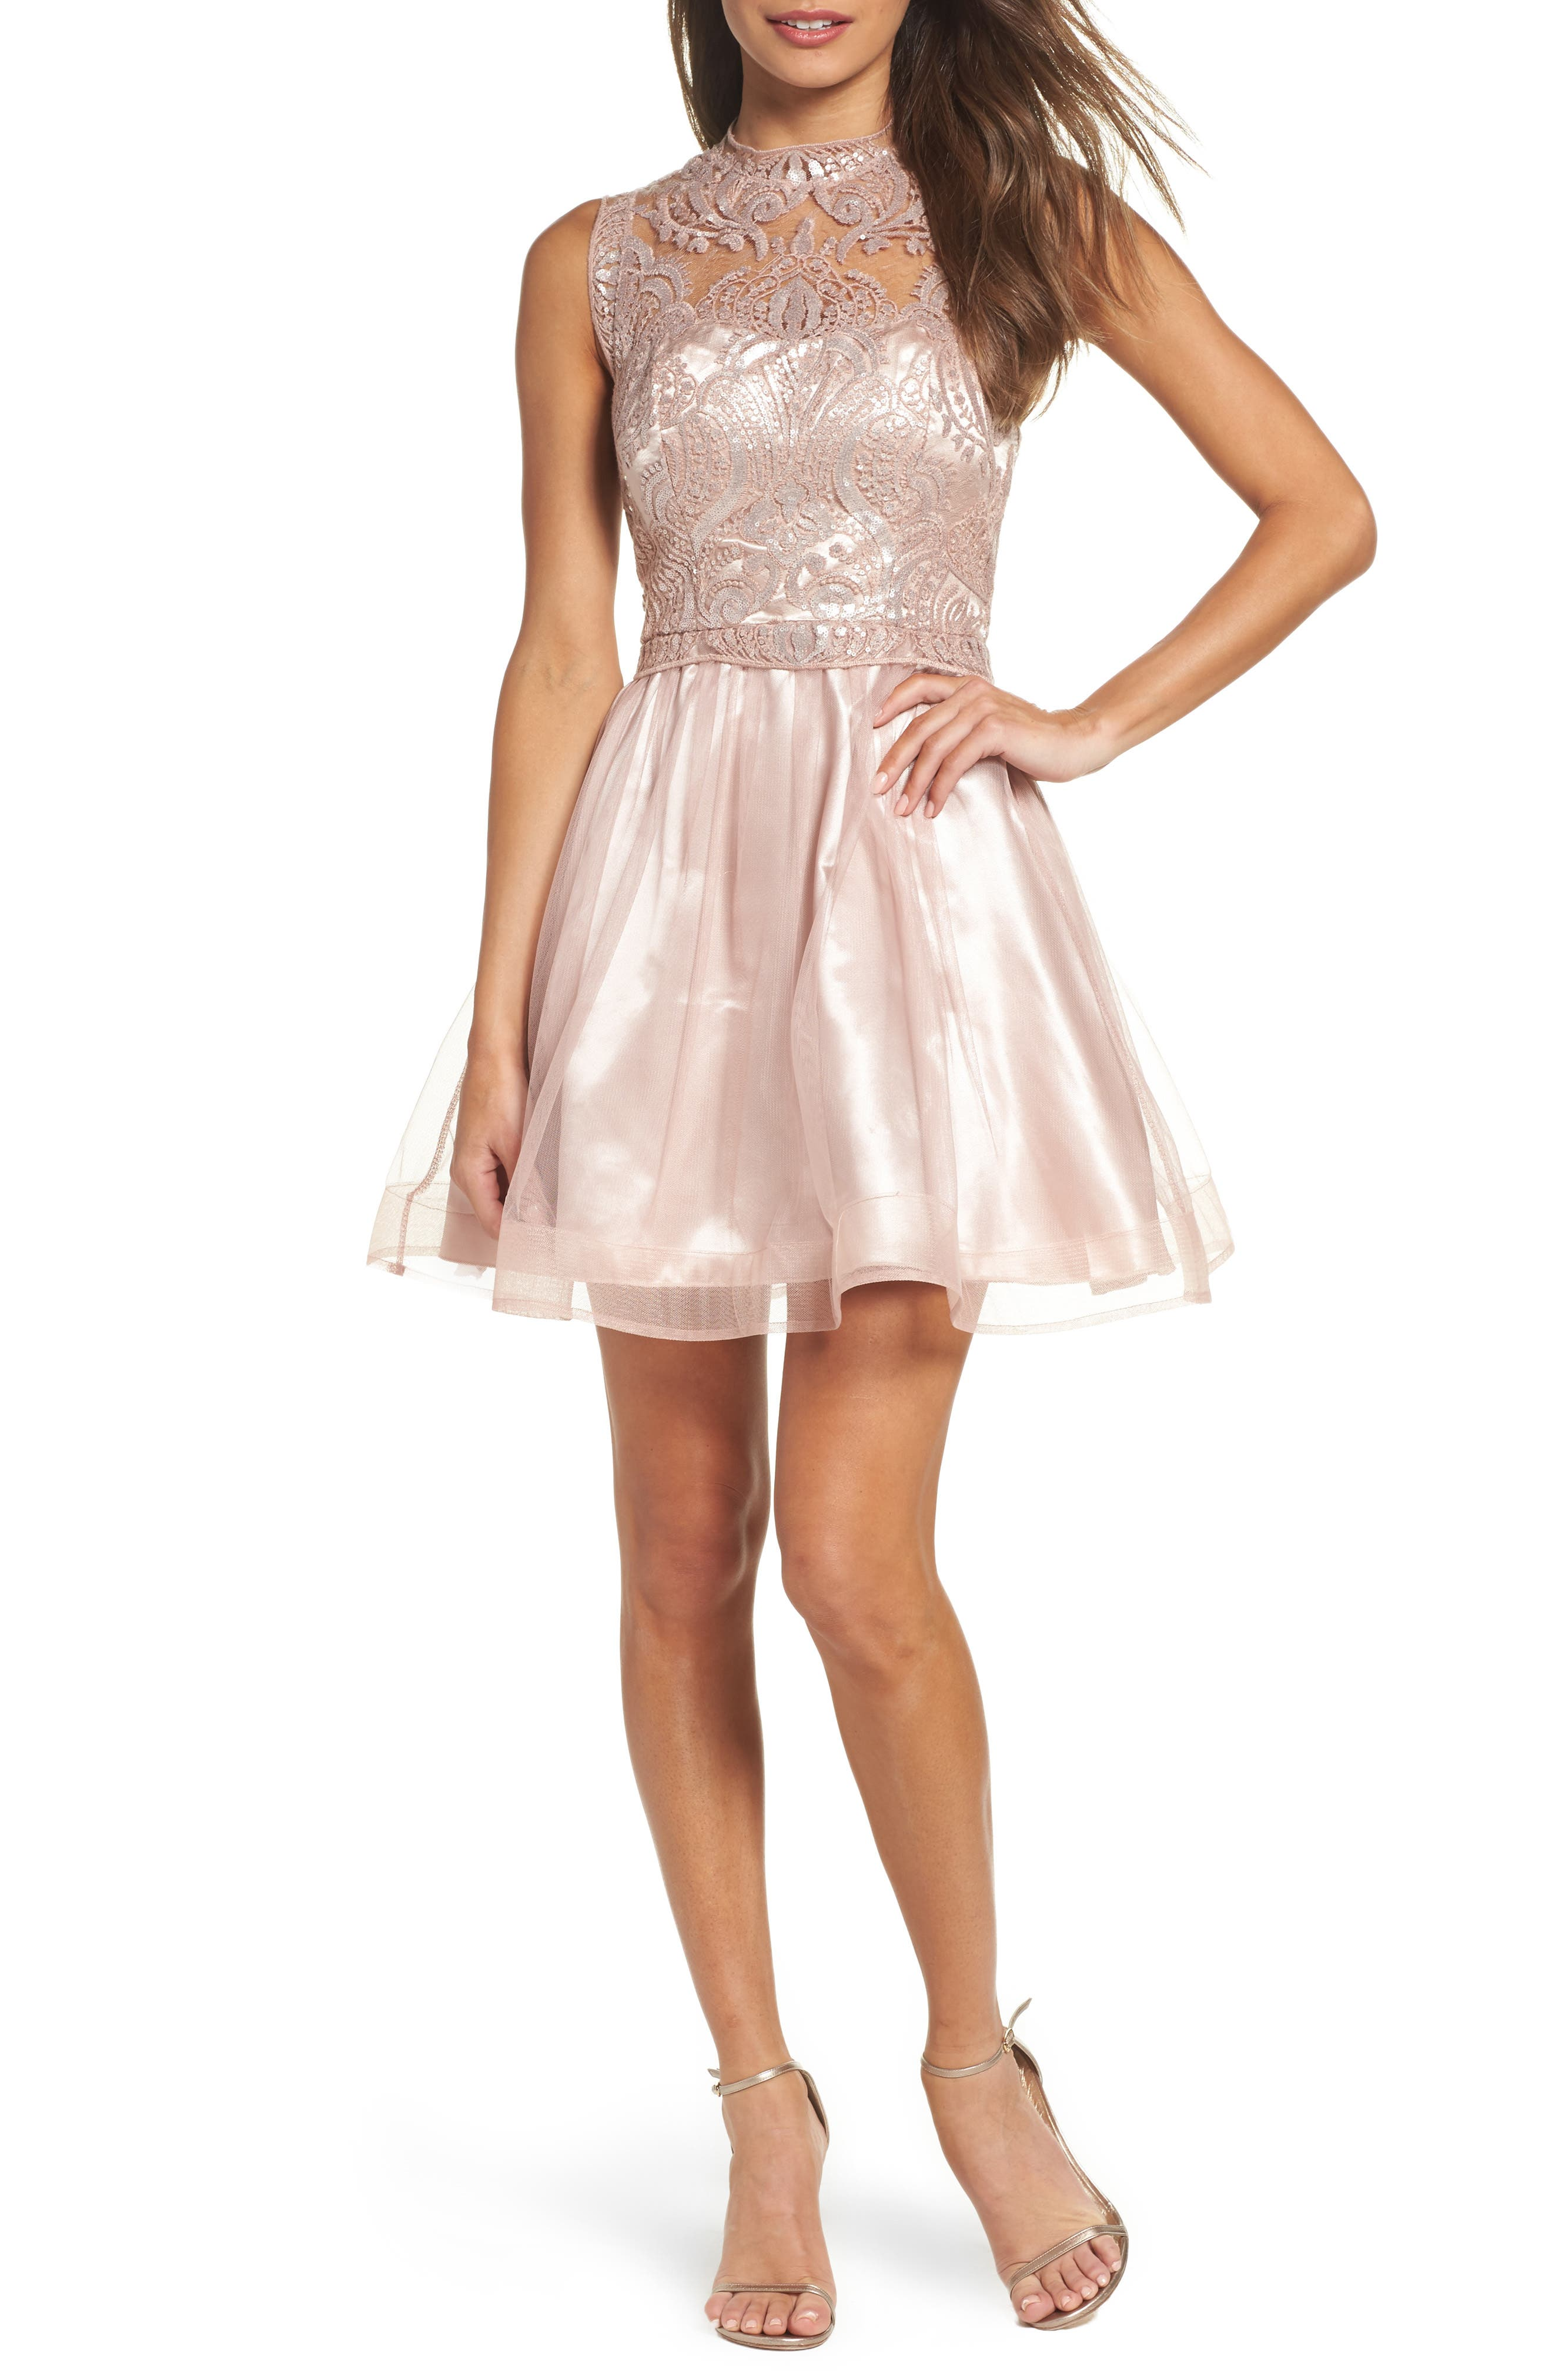 Main Image - Sequin Hearts Lace Illusion Fit & Flare Dress